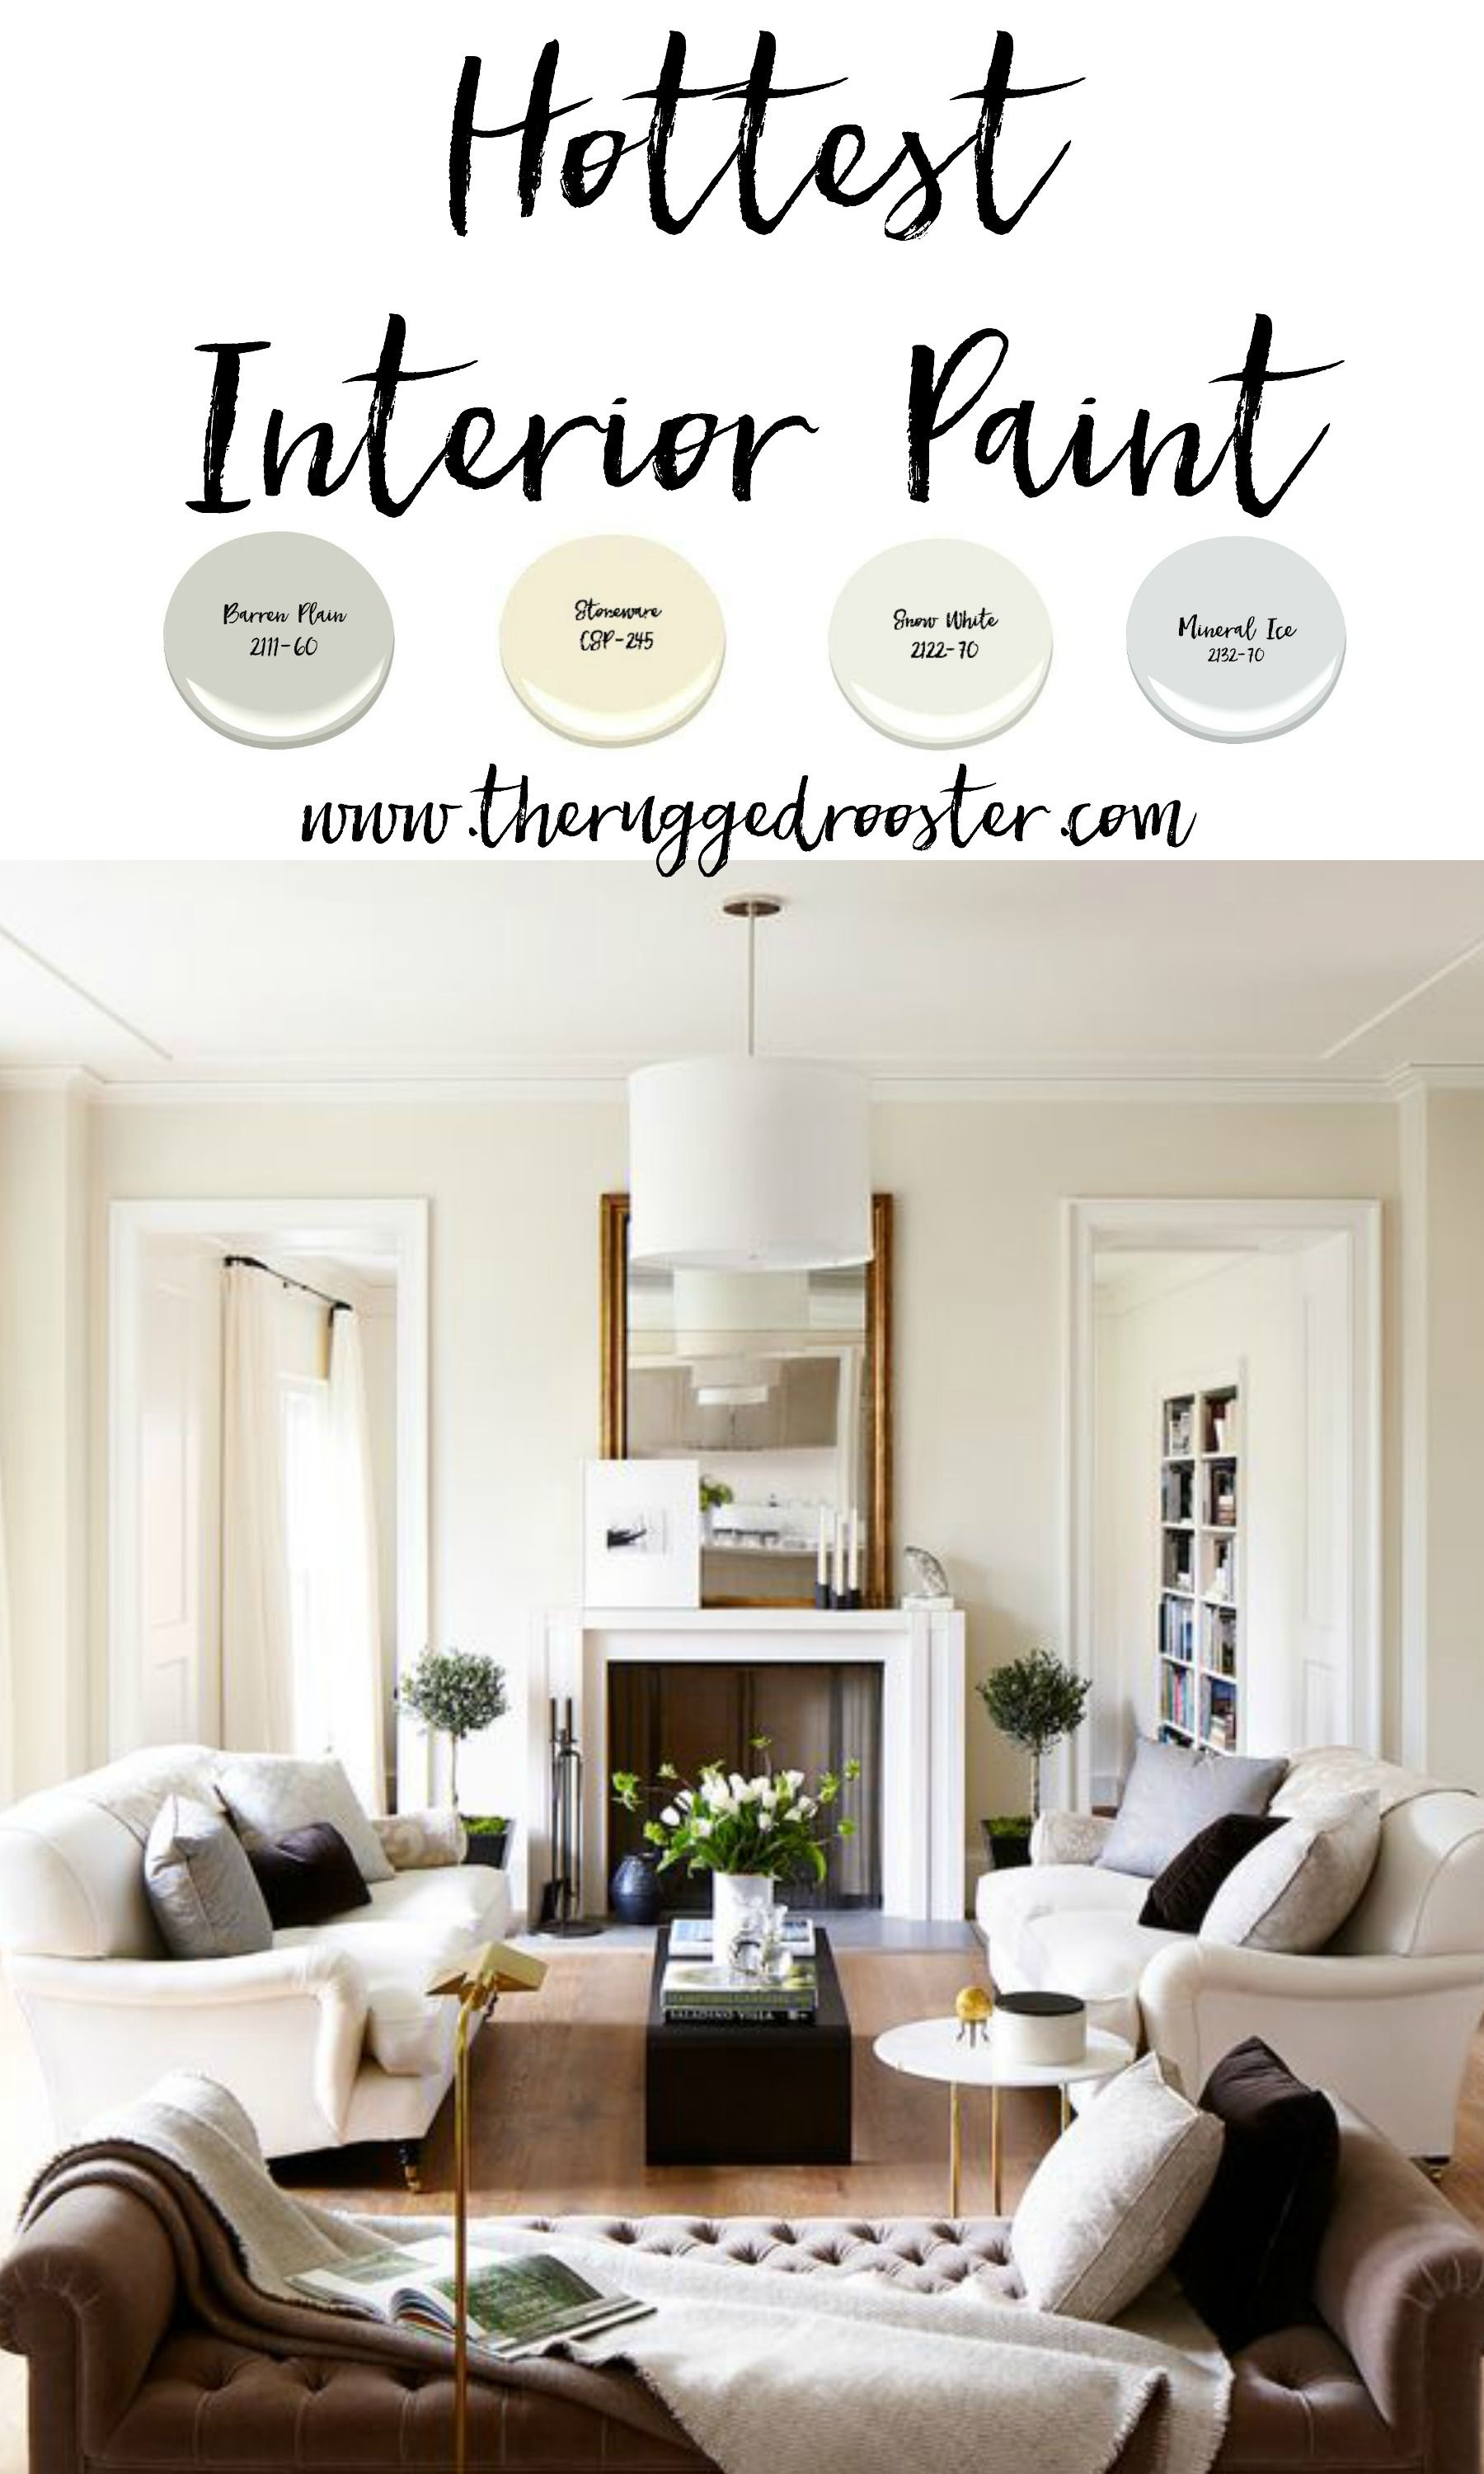 Exceptionnel Hottest Interior Paint Colors, Where TO Buy And Paint Chips  Www.theruggedrooster.com